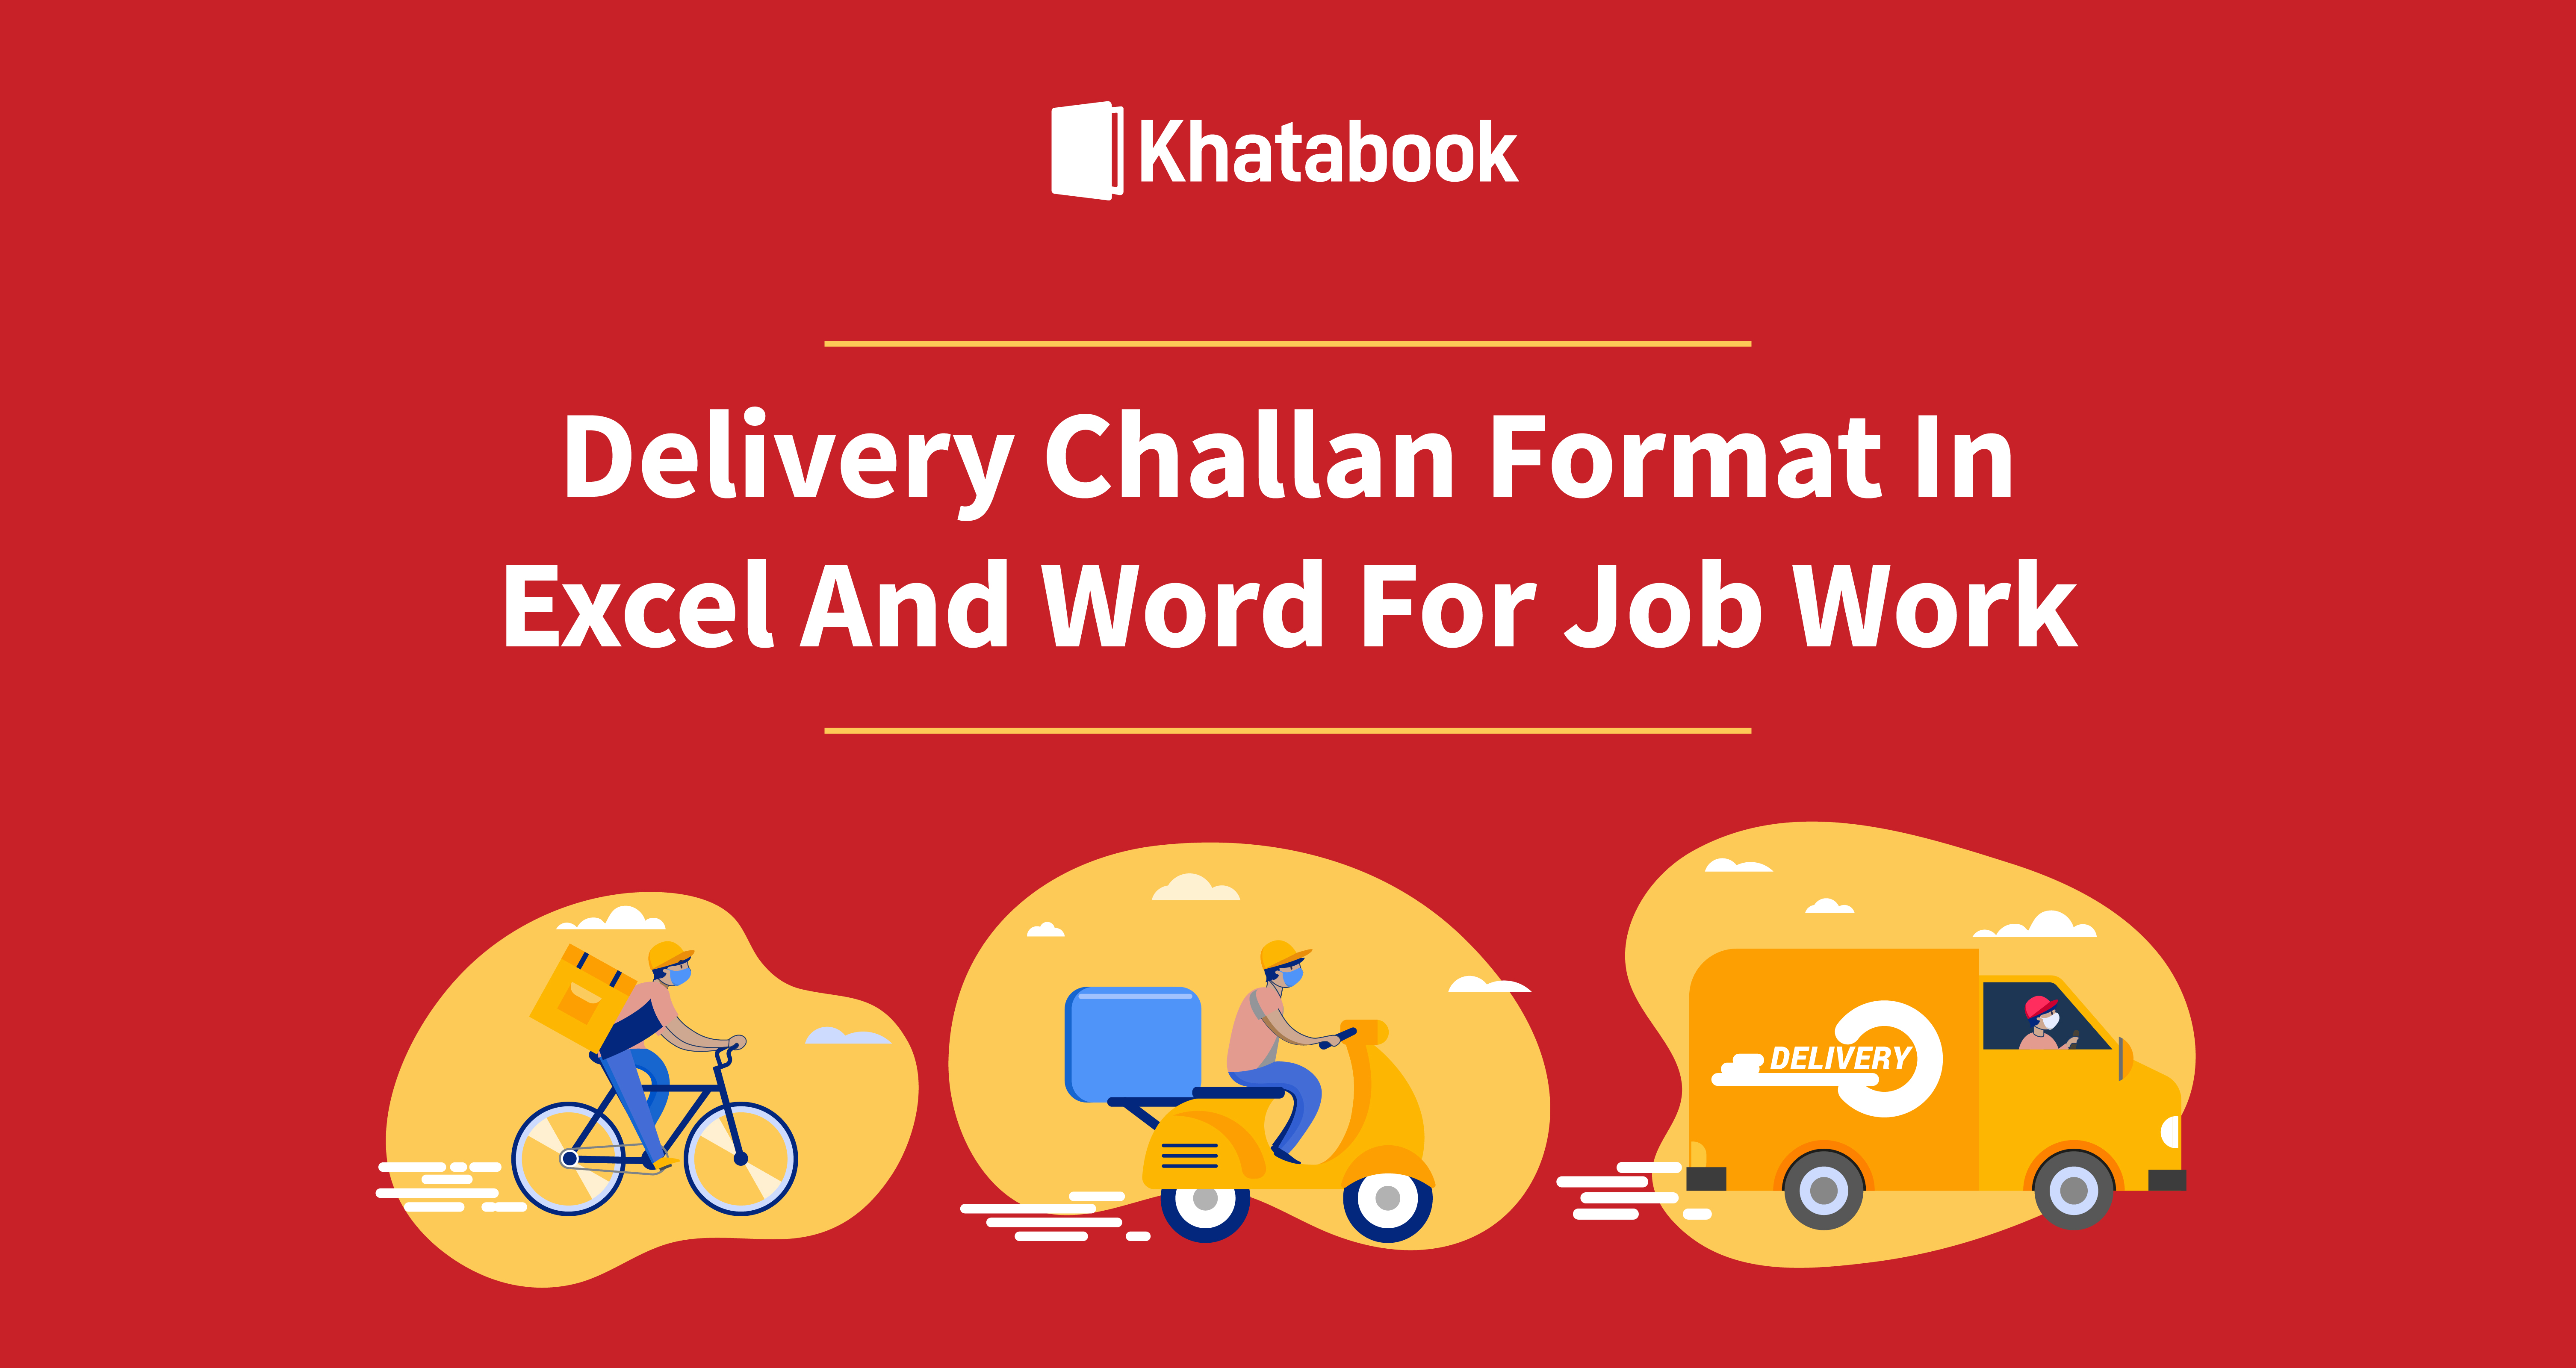 Delivery Challan Format in Excel and Word for Job Work